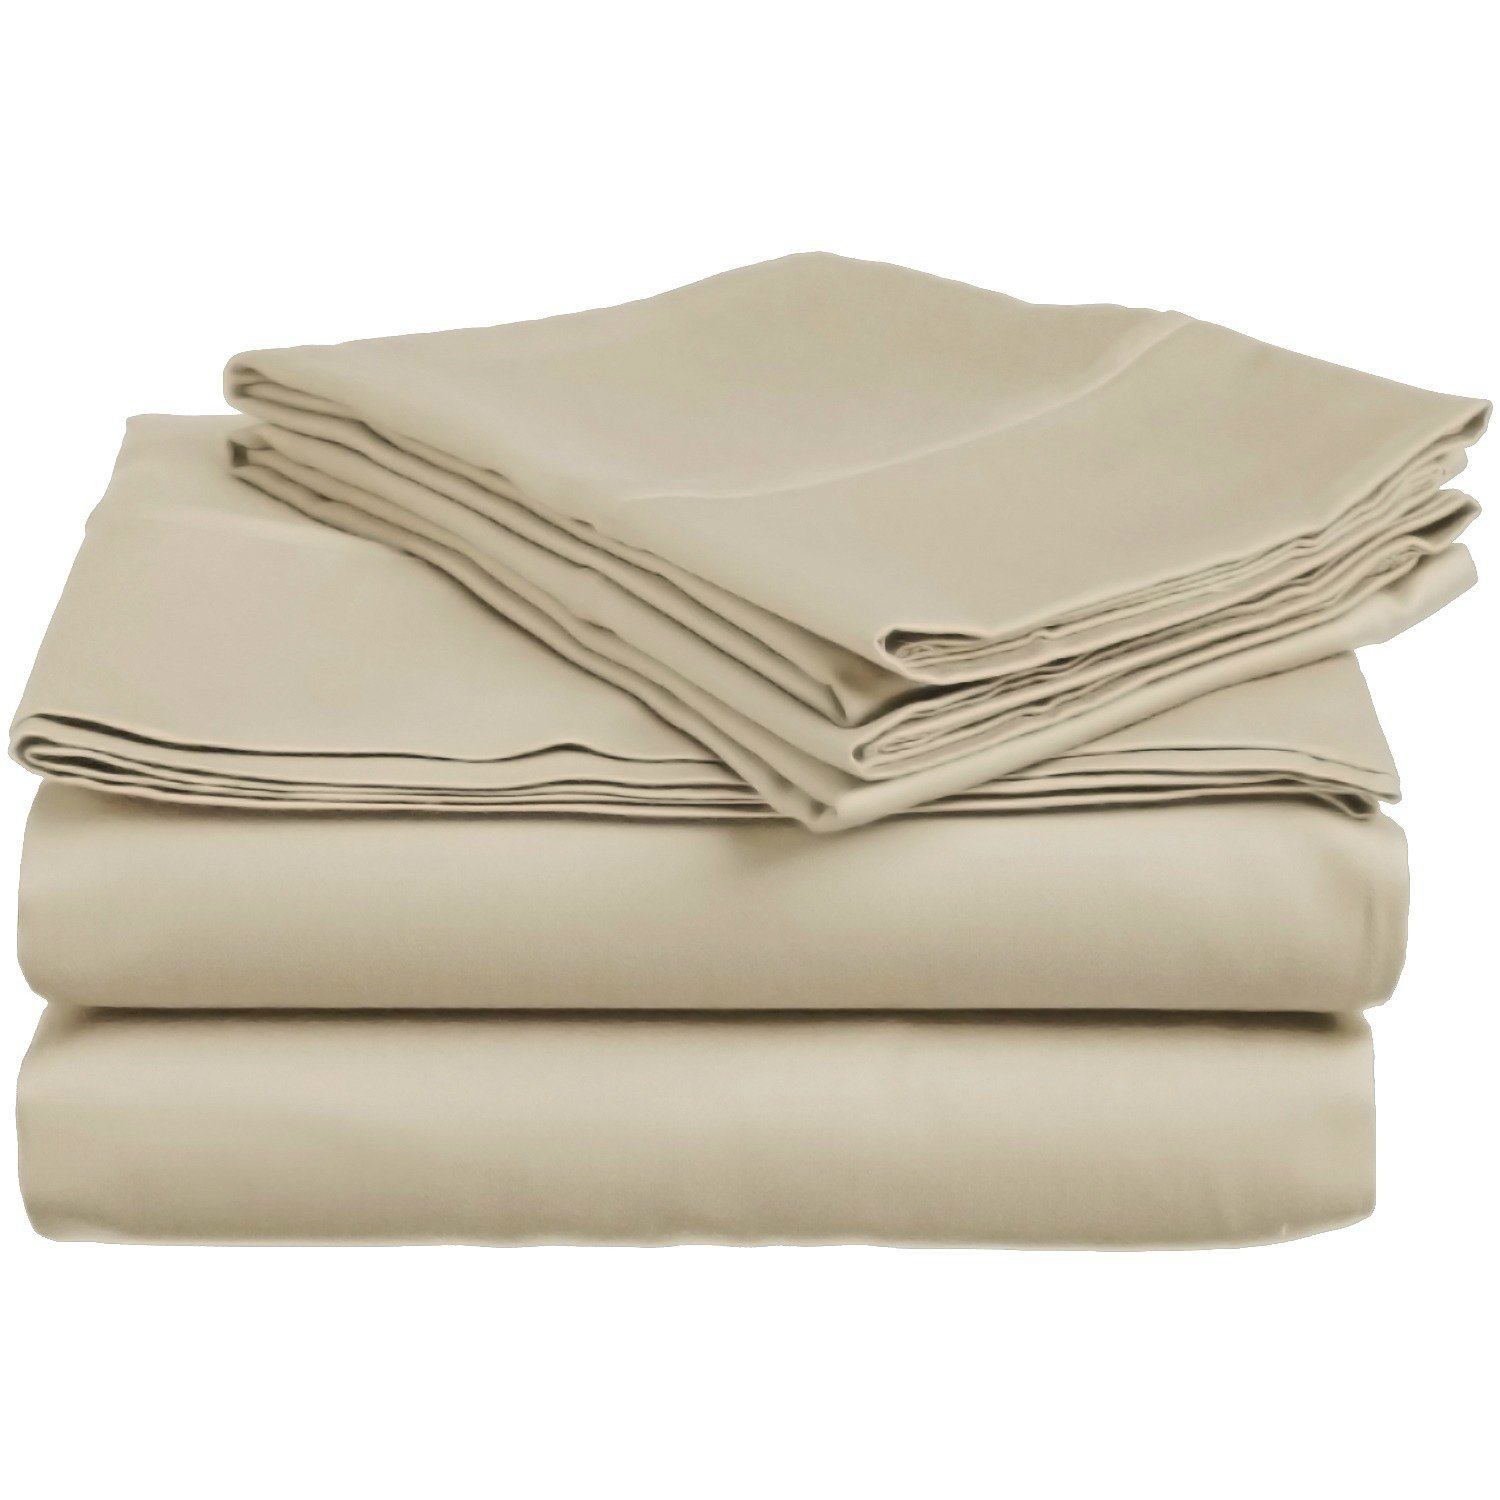 3 Piece Twin Tan Bed Sheet Set, Ultra cozy, super soft, lightweight, durable, satiny smooth, Fully Elasticized, Sateen weave with 300 thread count, Sand, Cotton